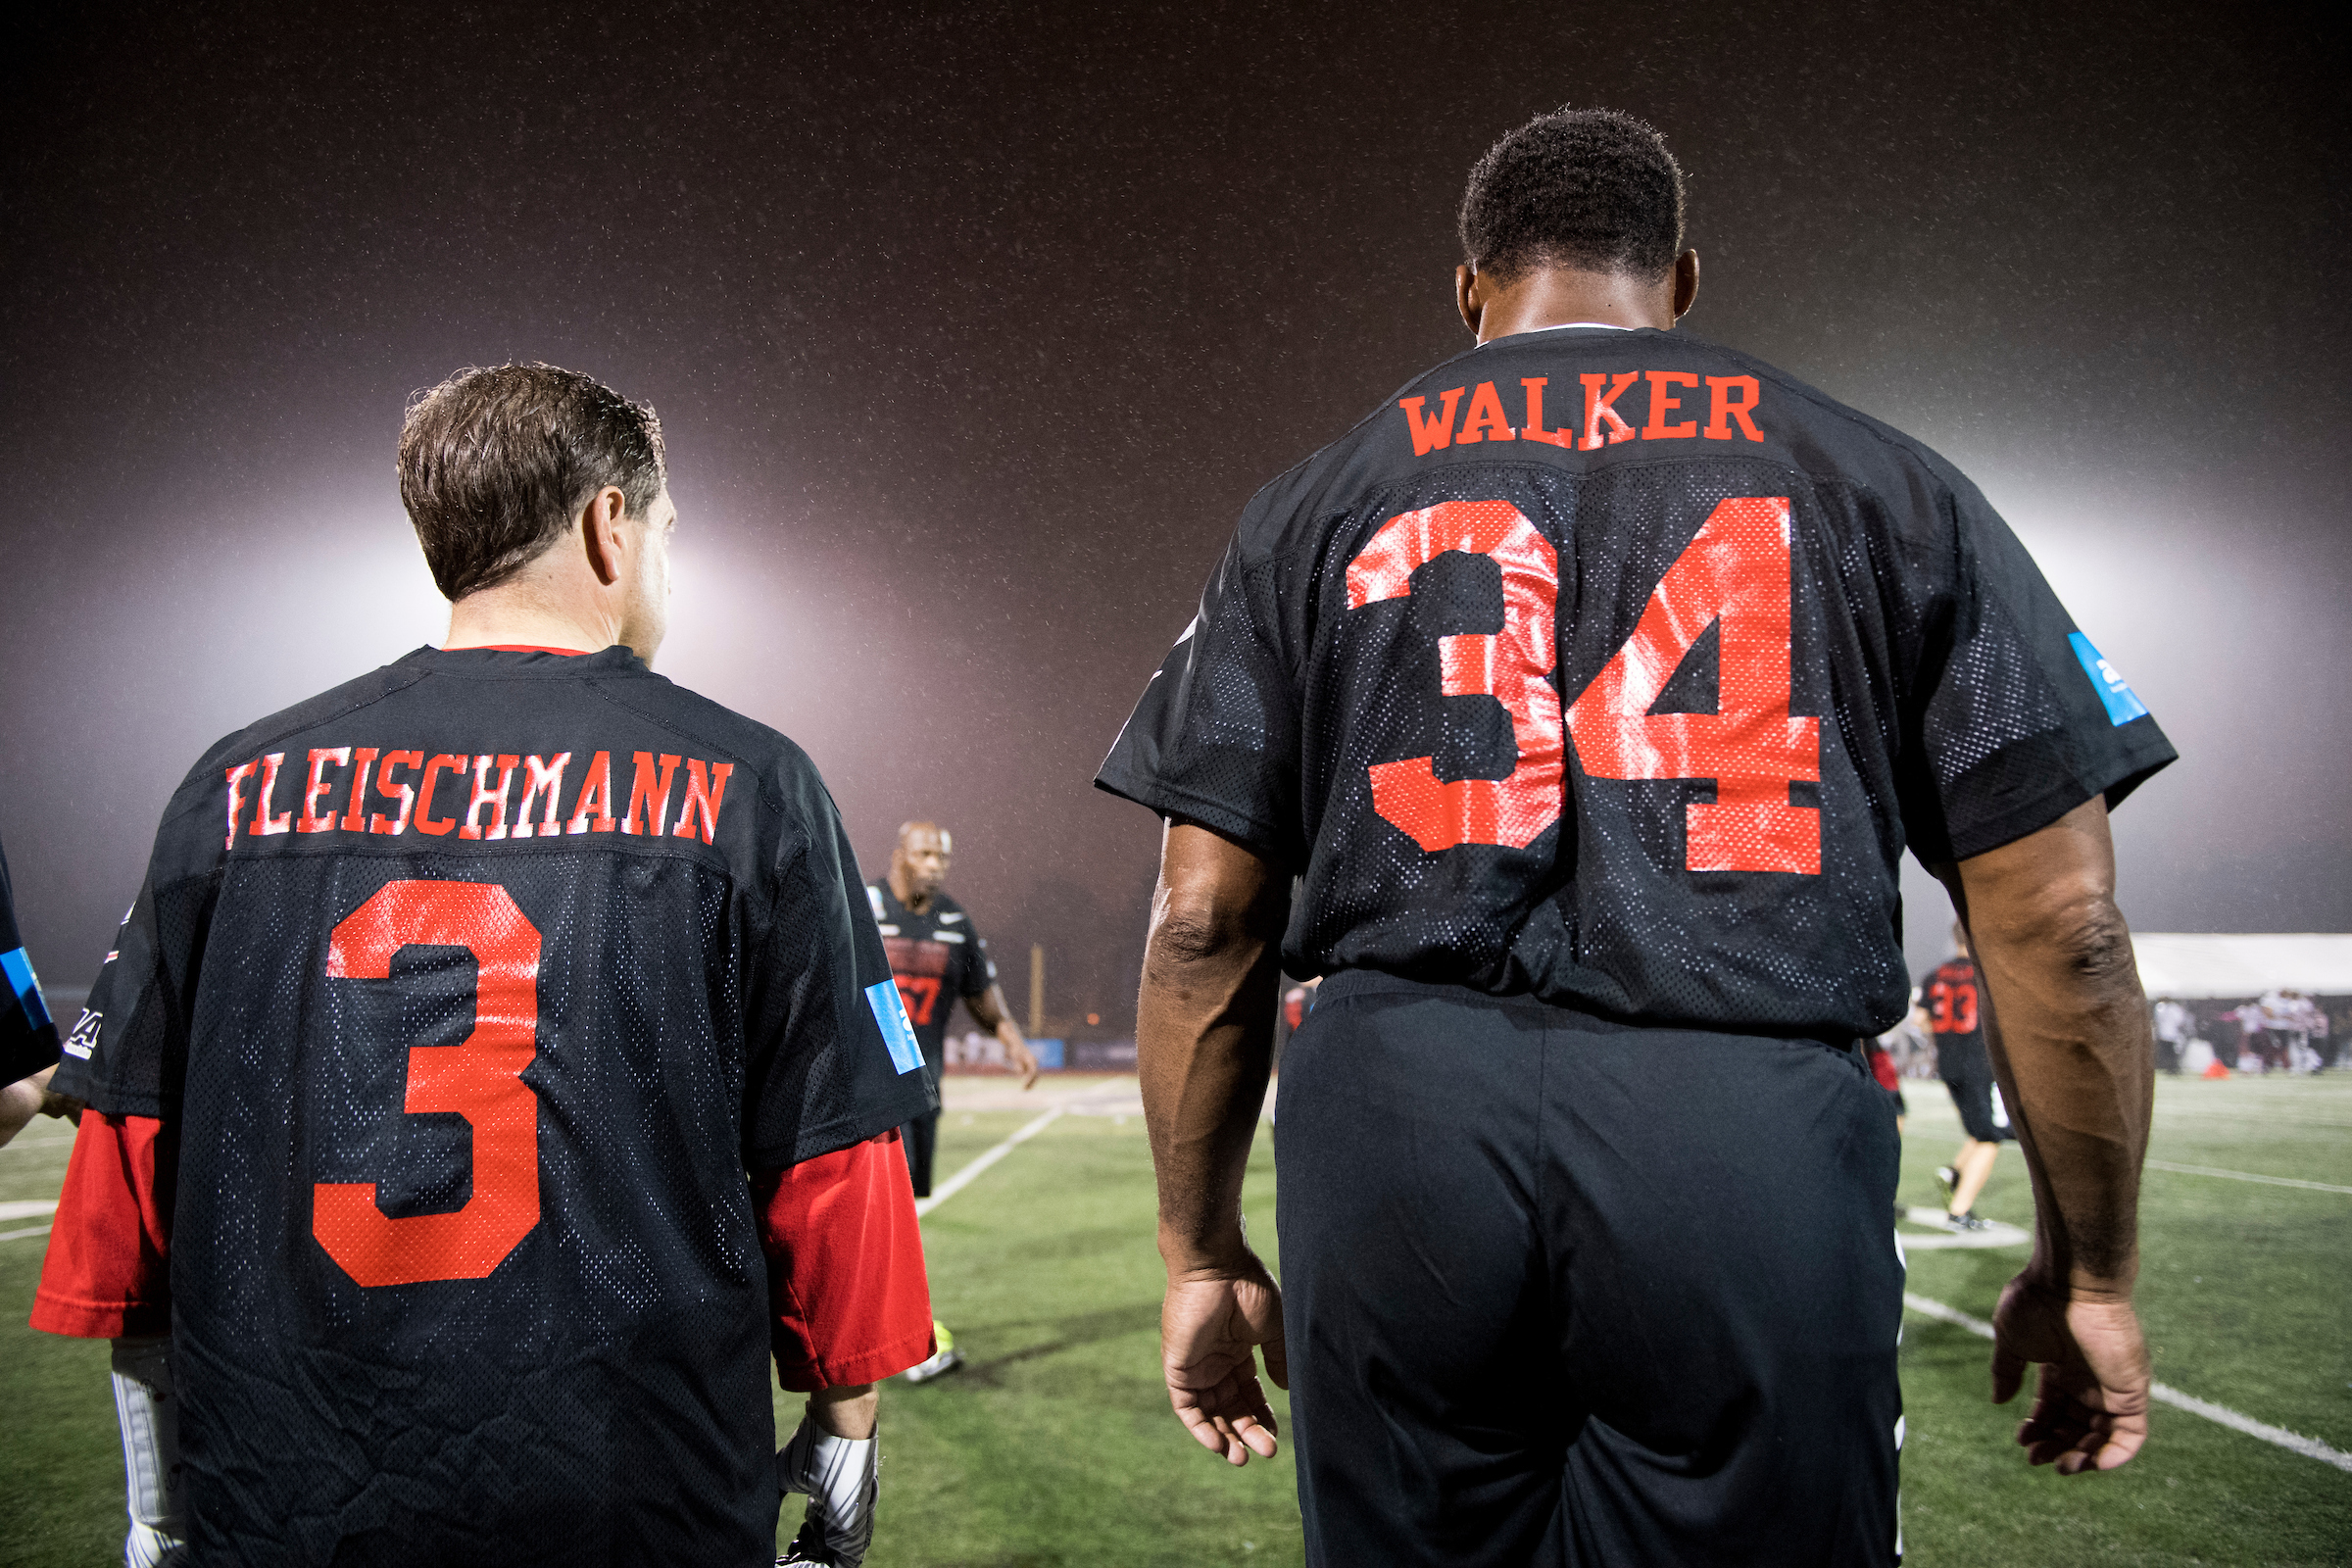 Rep. Chuck Fleischmann, R-Tenn., and NFL star Herschel Walker watch amor the sidelines during the Congressional Football Game at Gallaudet University in Washington on Wednesday, Oct. 11, 2017. The game featured the Capitol Police team The Guards vs the Congressional team The Mean Machine. (Photo By Bill Clark/Roll Call)